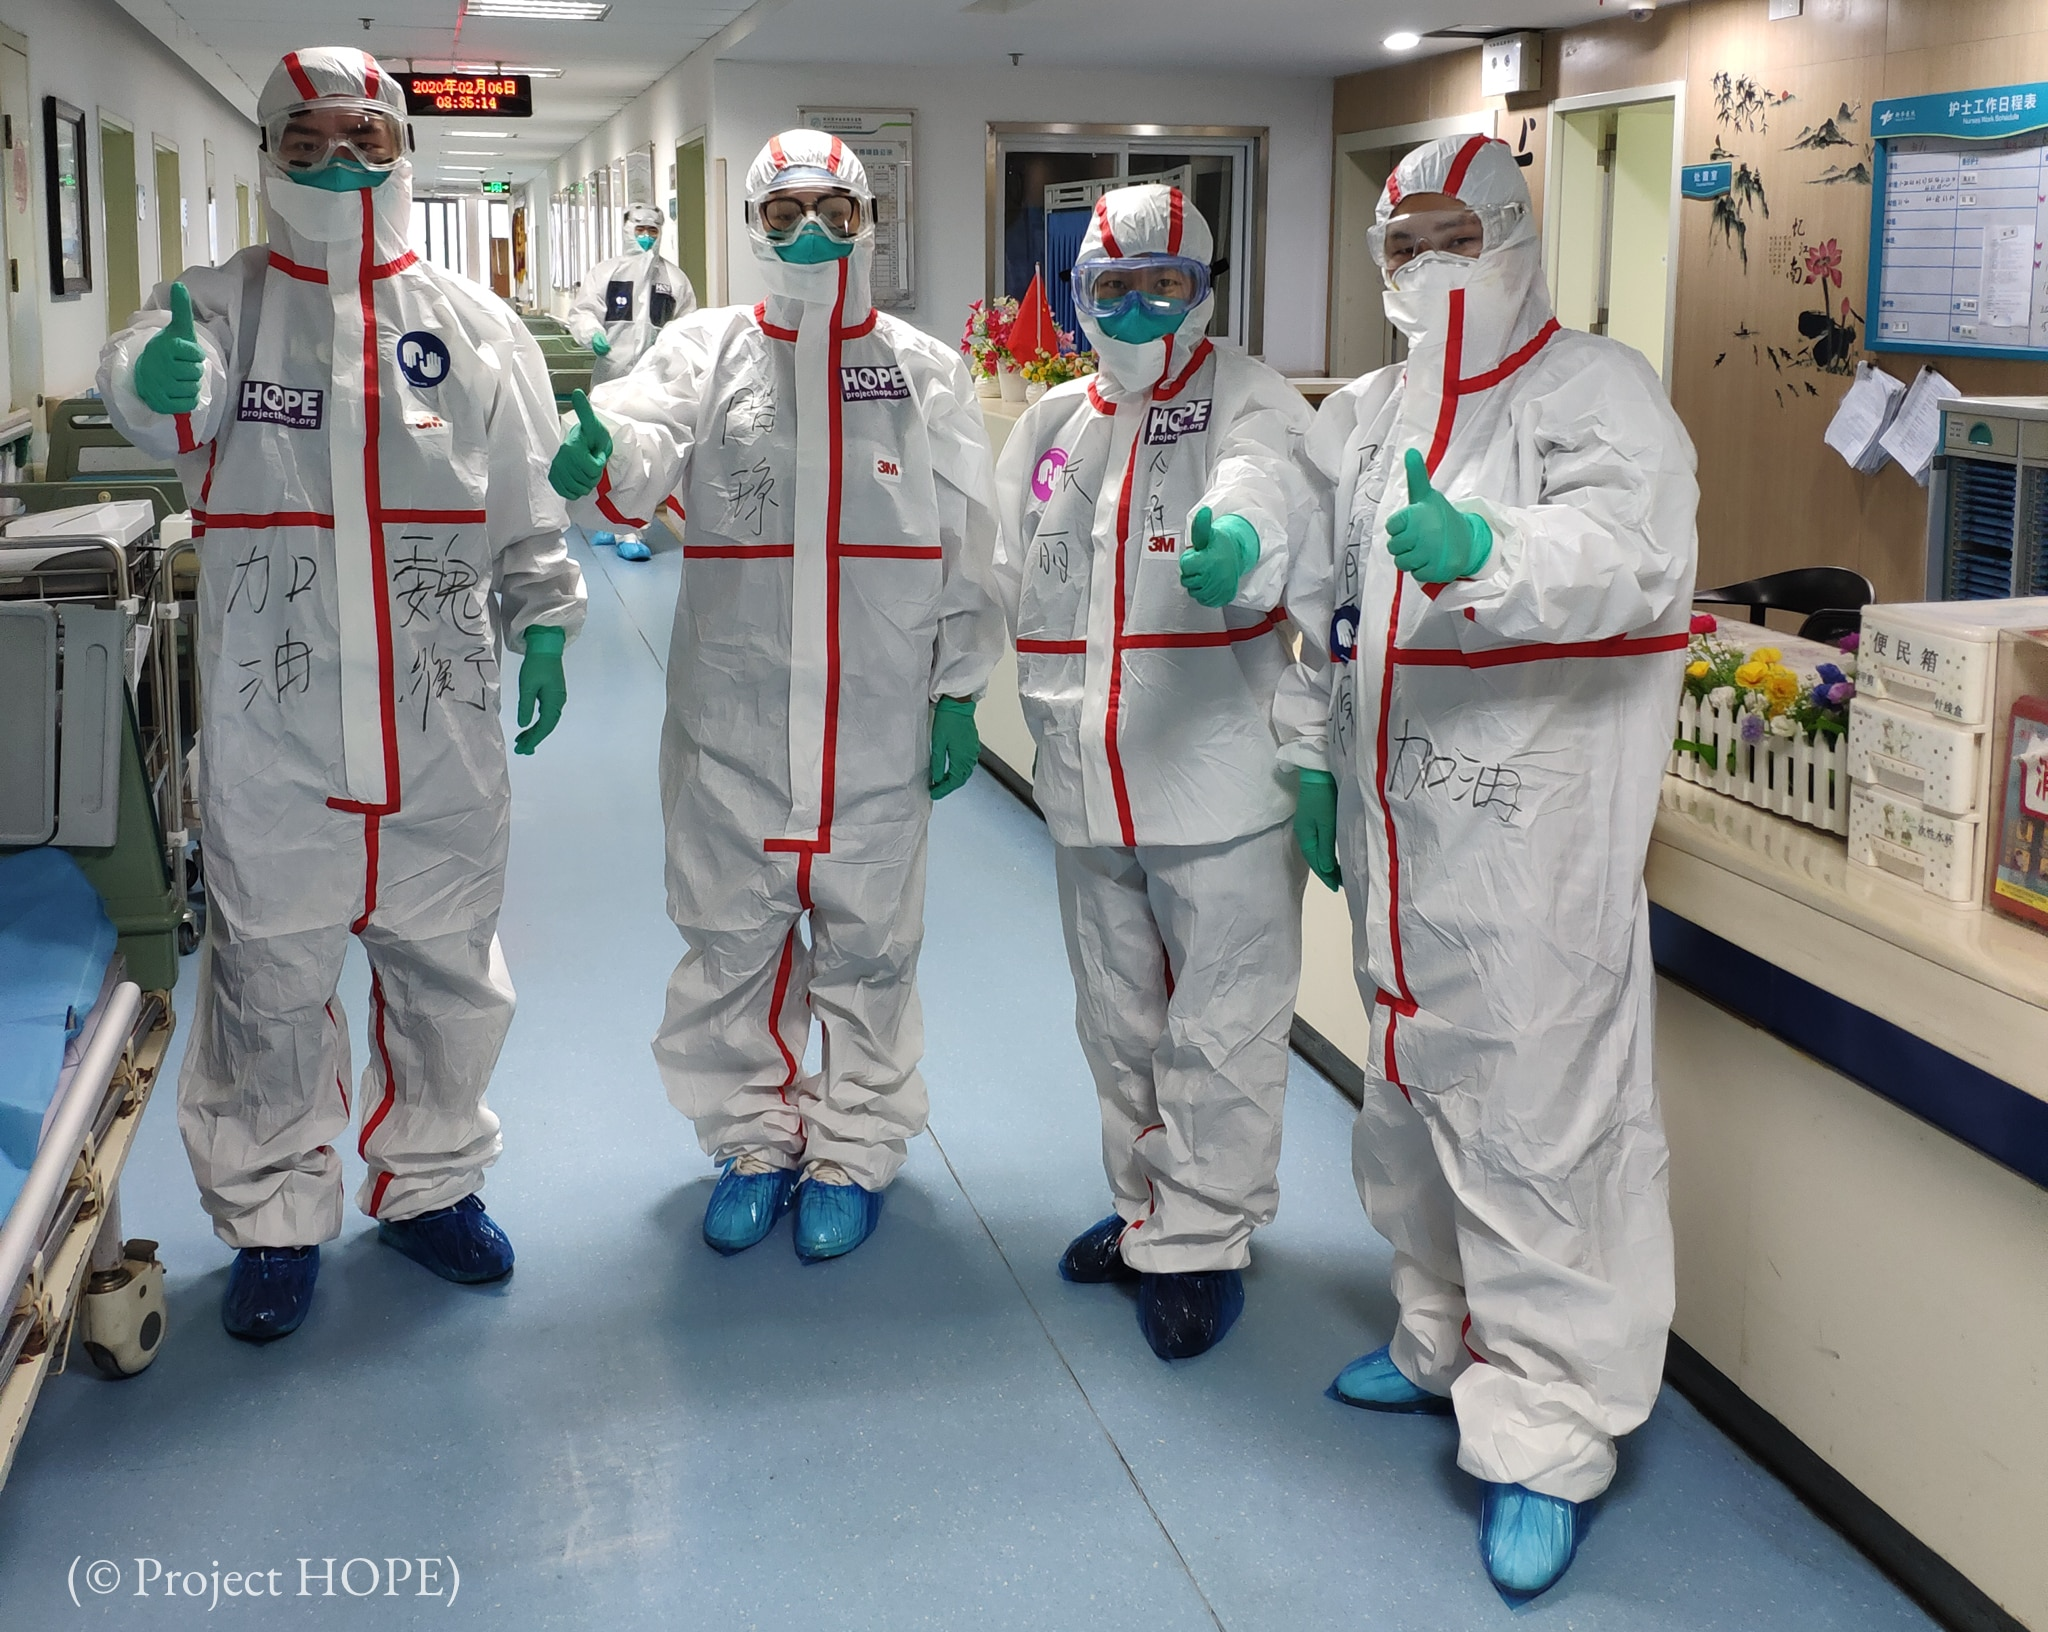 Four people in protective suits giving thumbs-up sign (© Project HOPE)